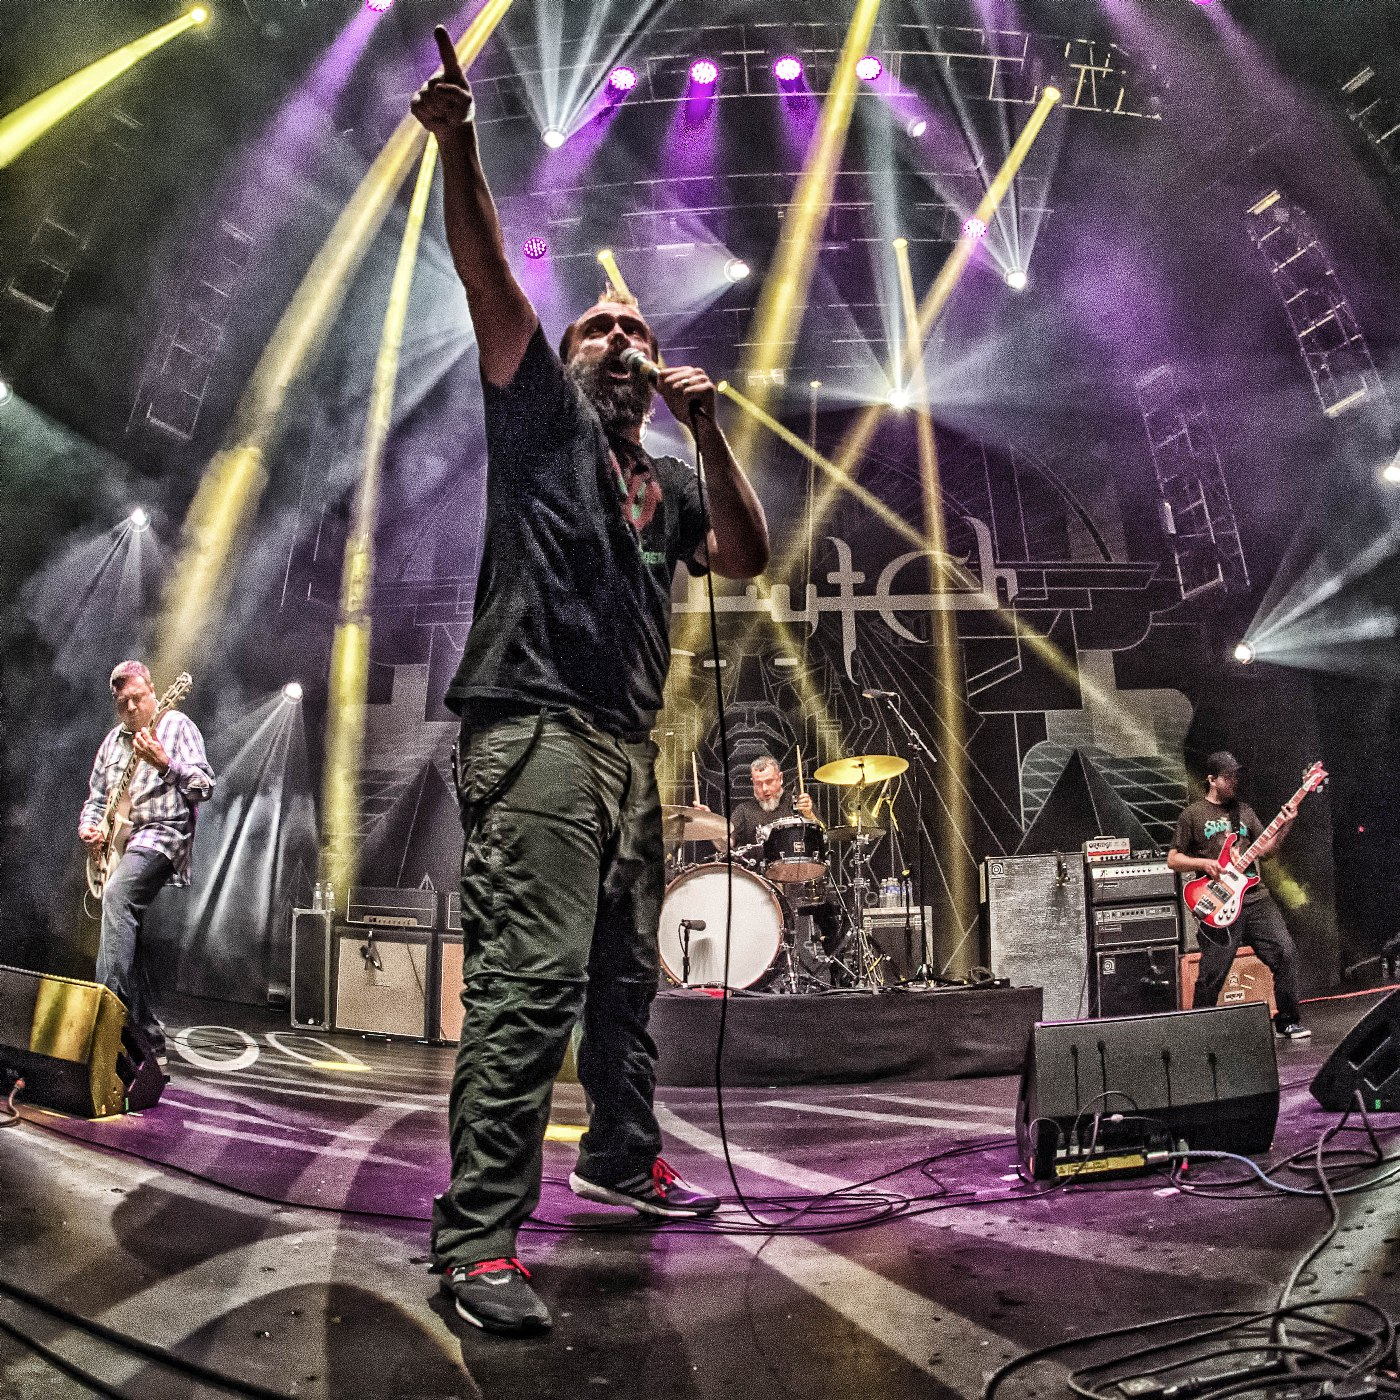 CLUTCH, live photo 2014, credit Marc Millman